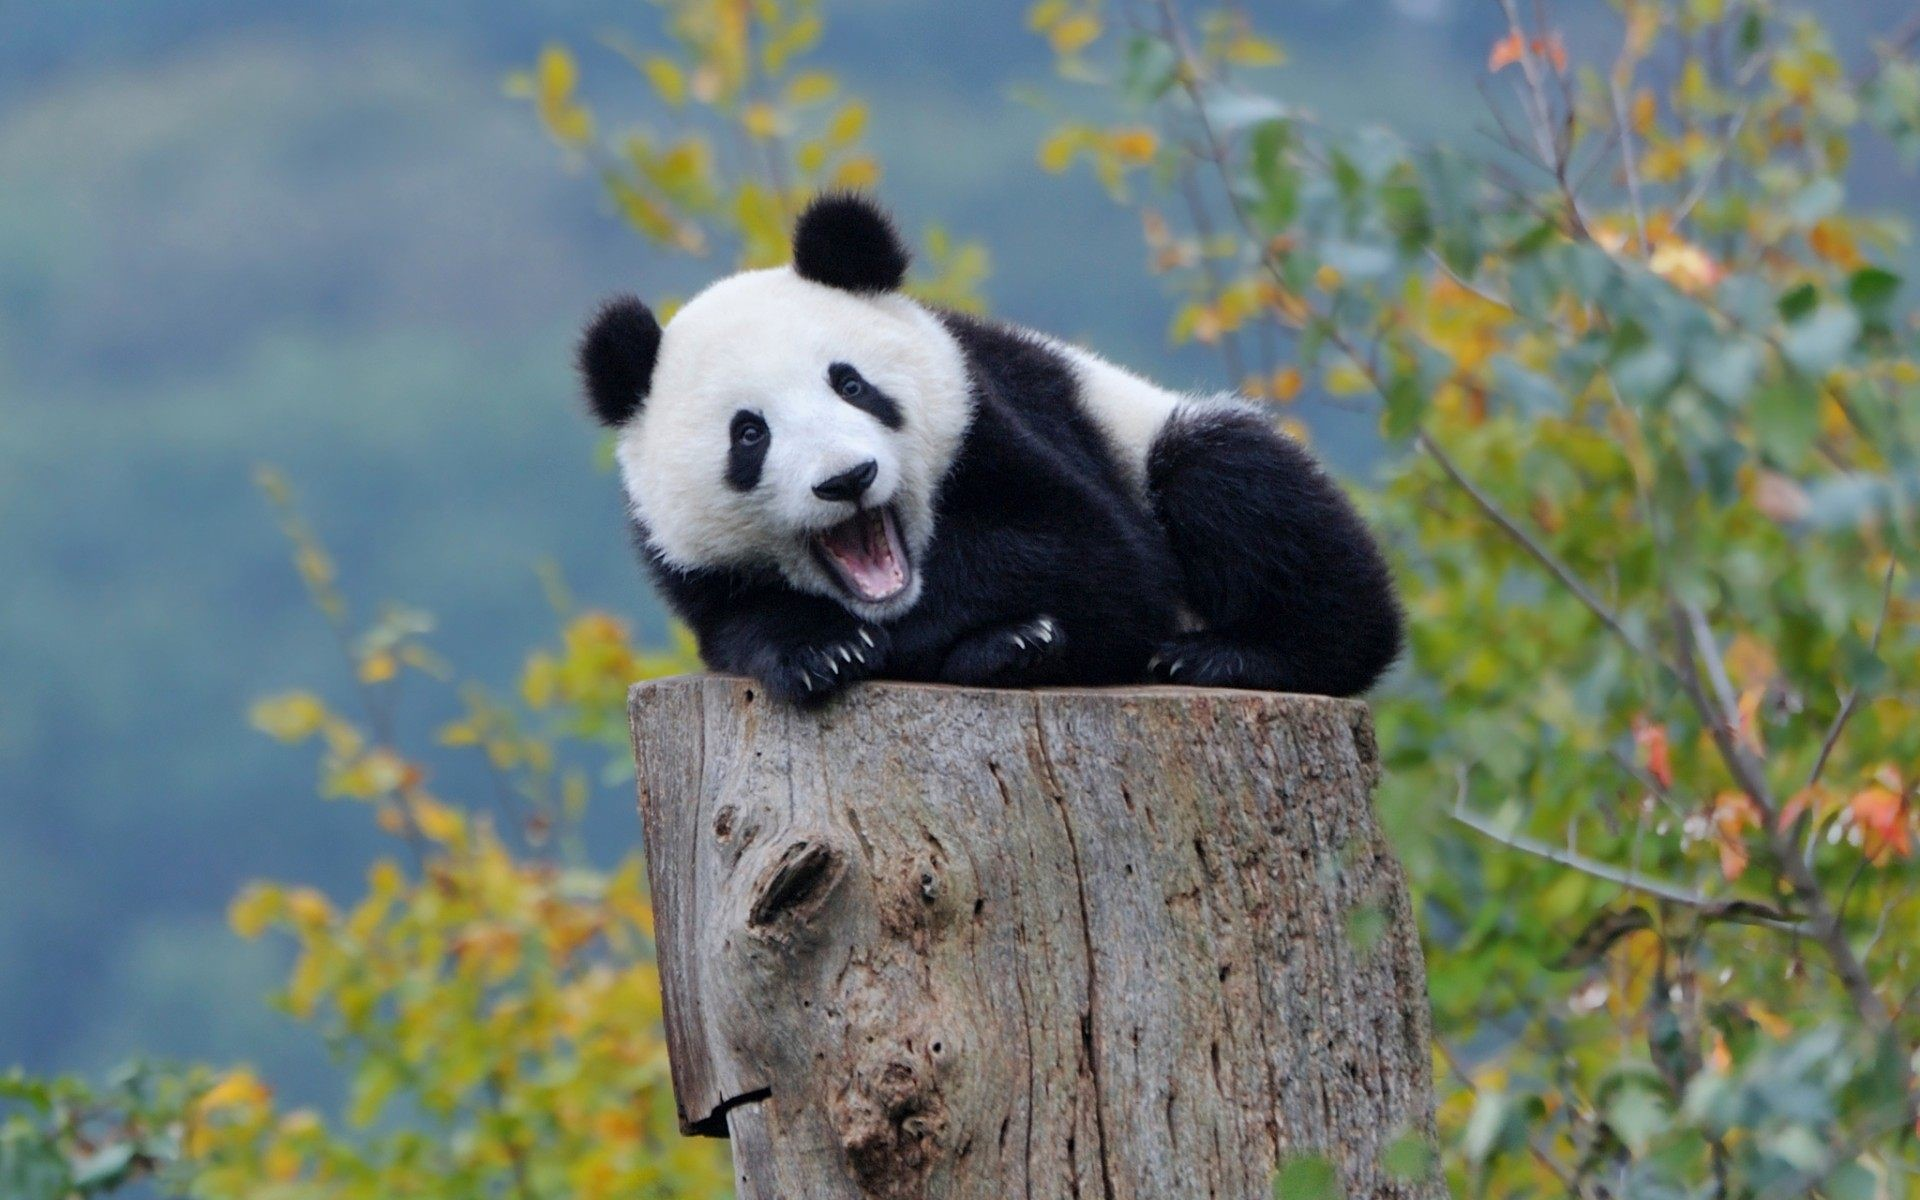 Cute Panda Wallpaper Collection For Free Download